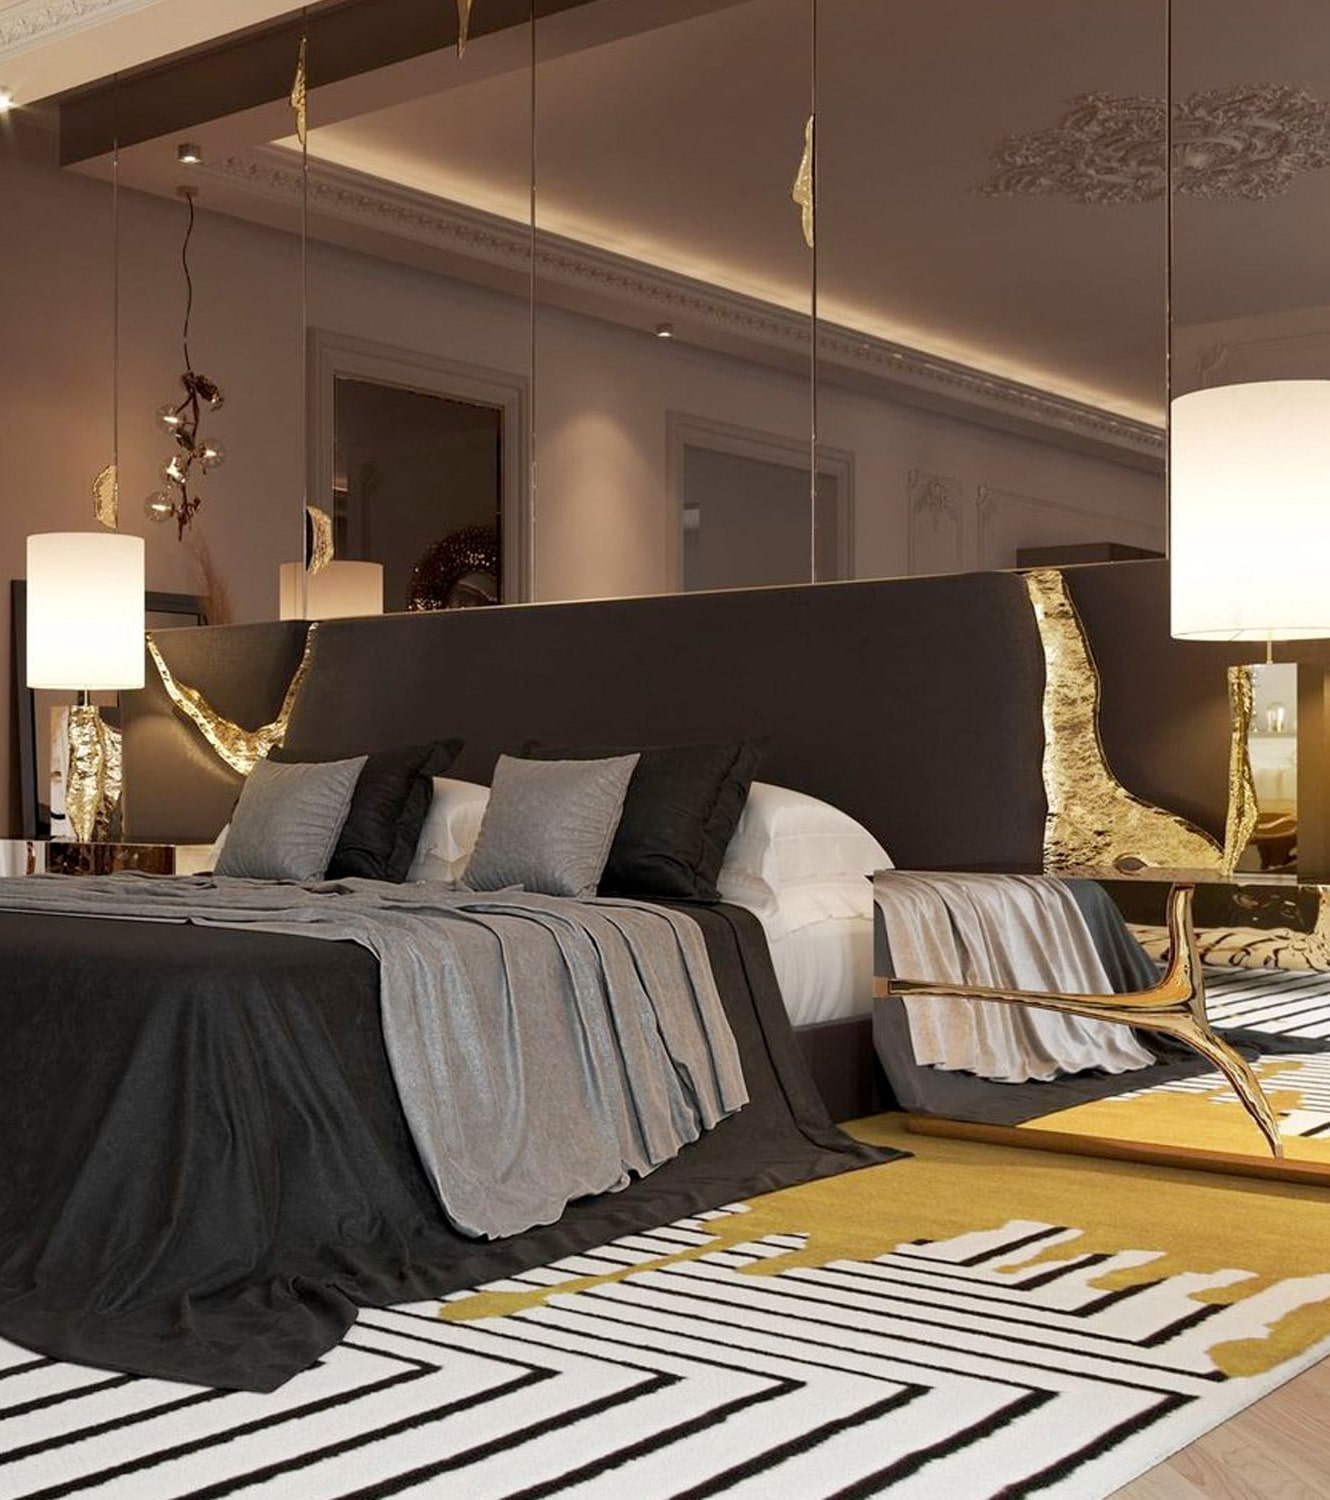 master suite - BOCA DO LOBO'S DELUXE PENTHOUSE IN THE HEART OF PARIS